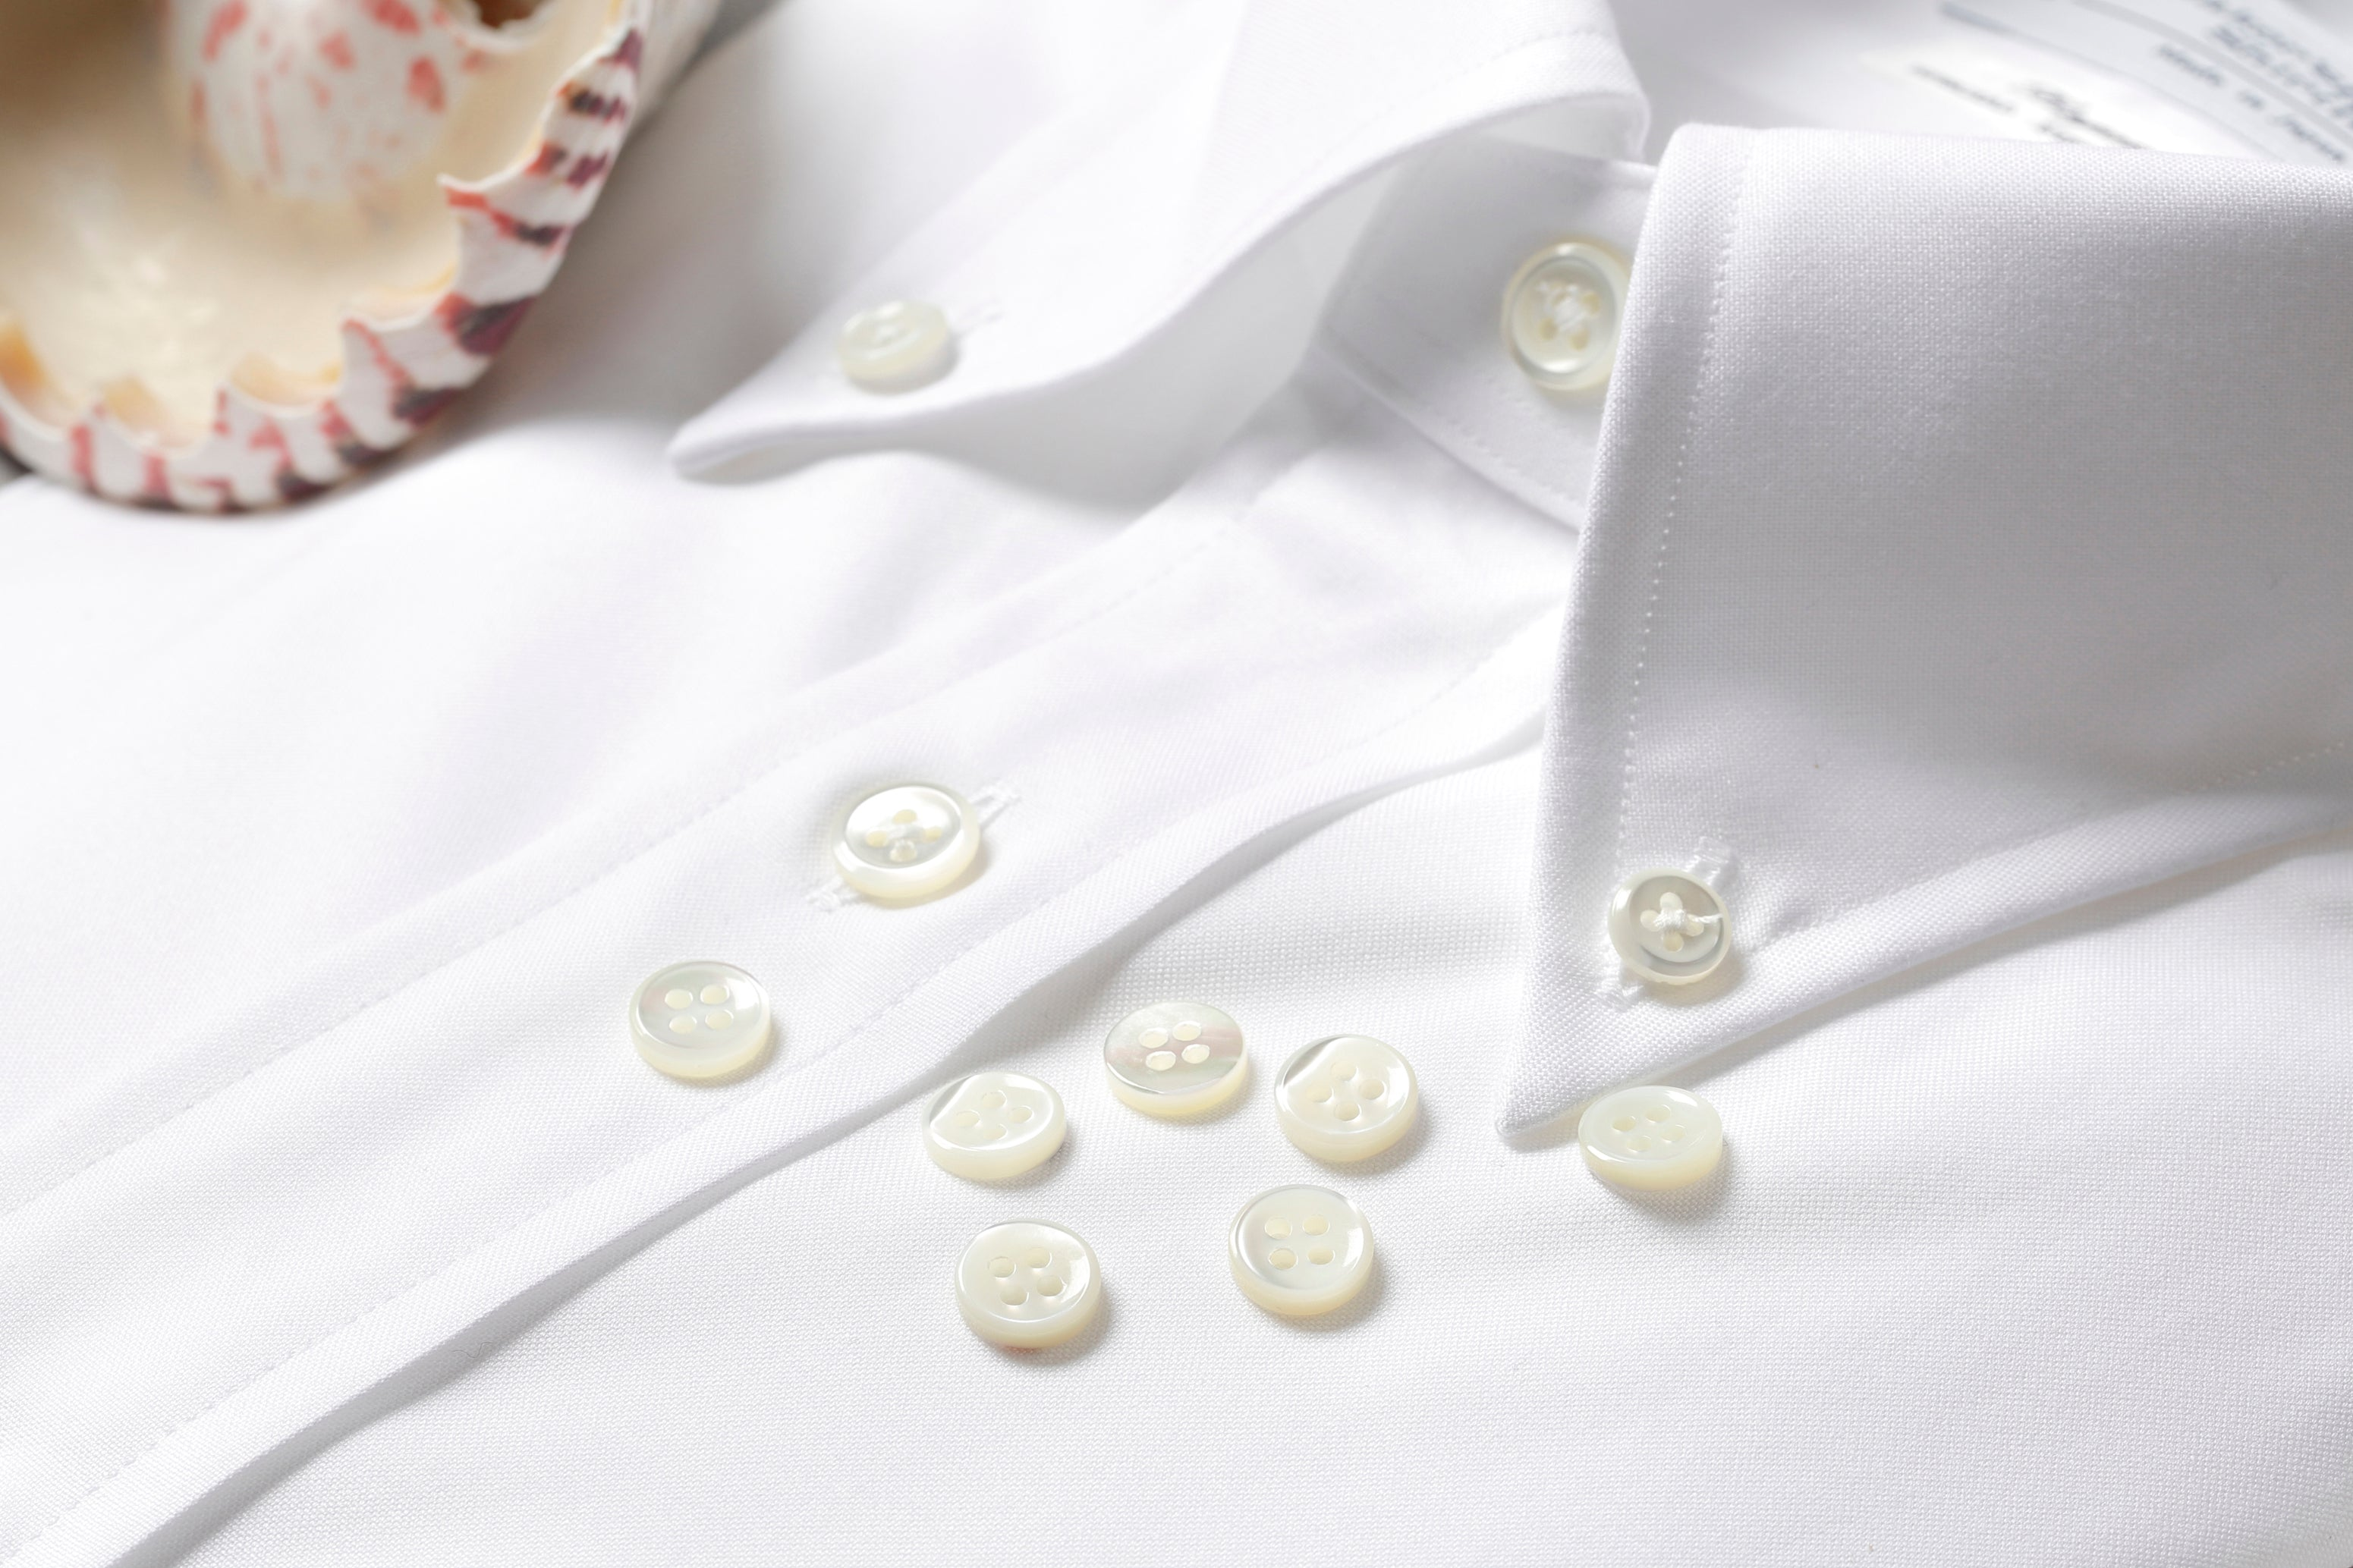 Button down shirt with various buttons